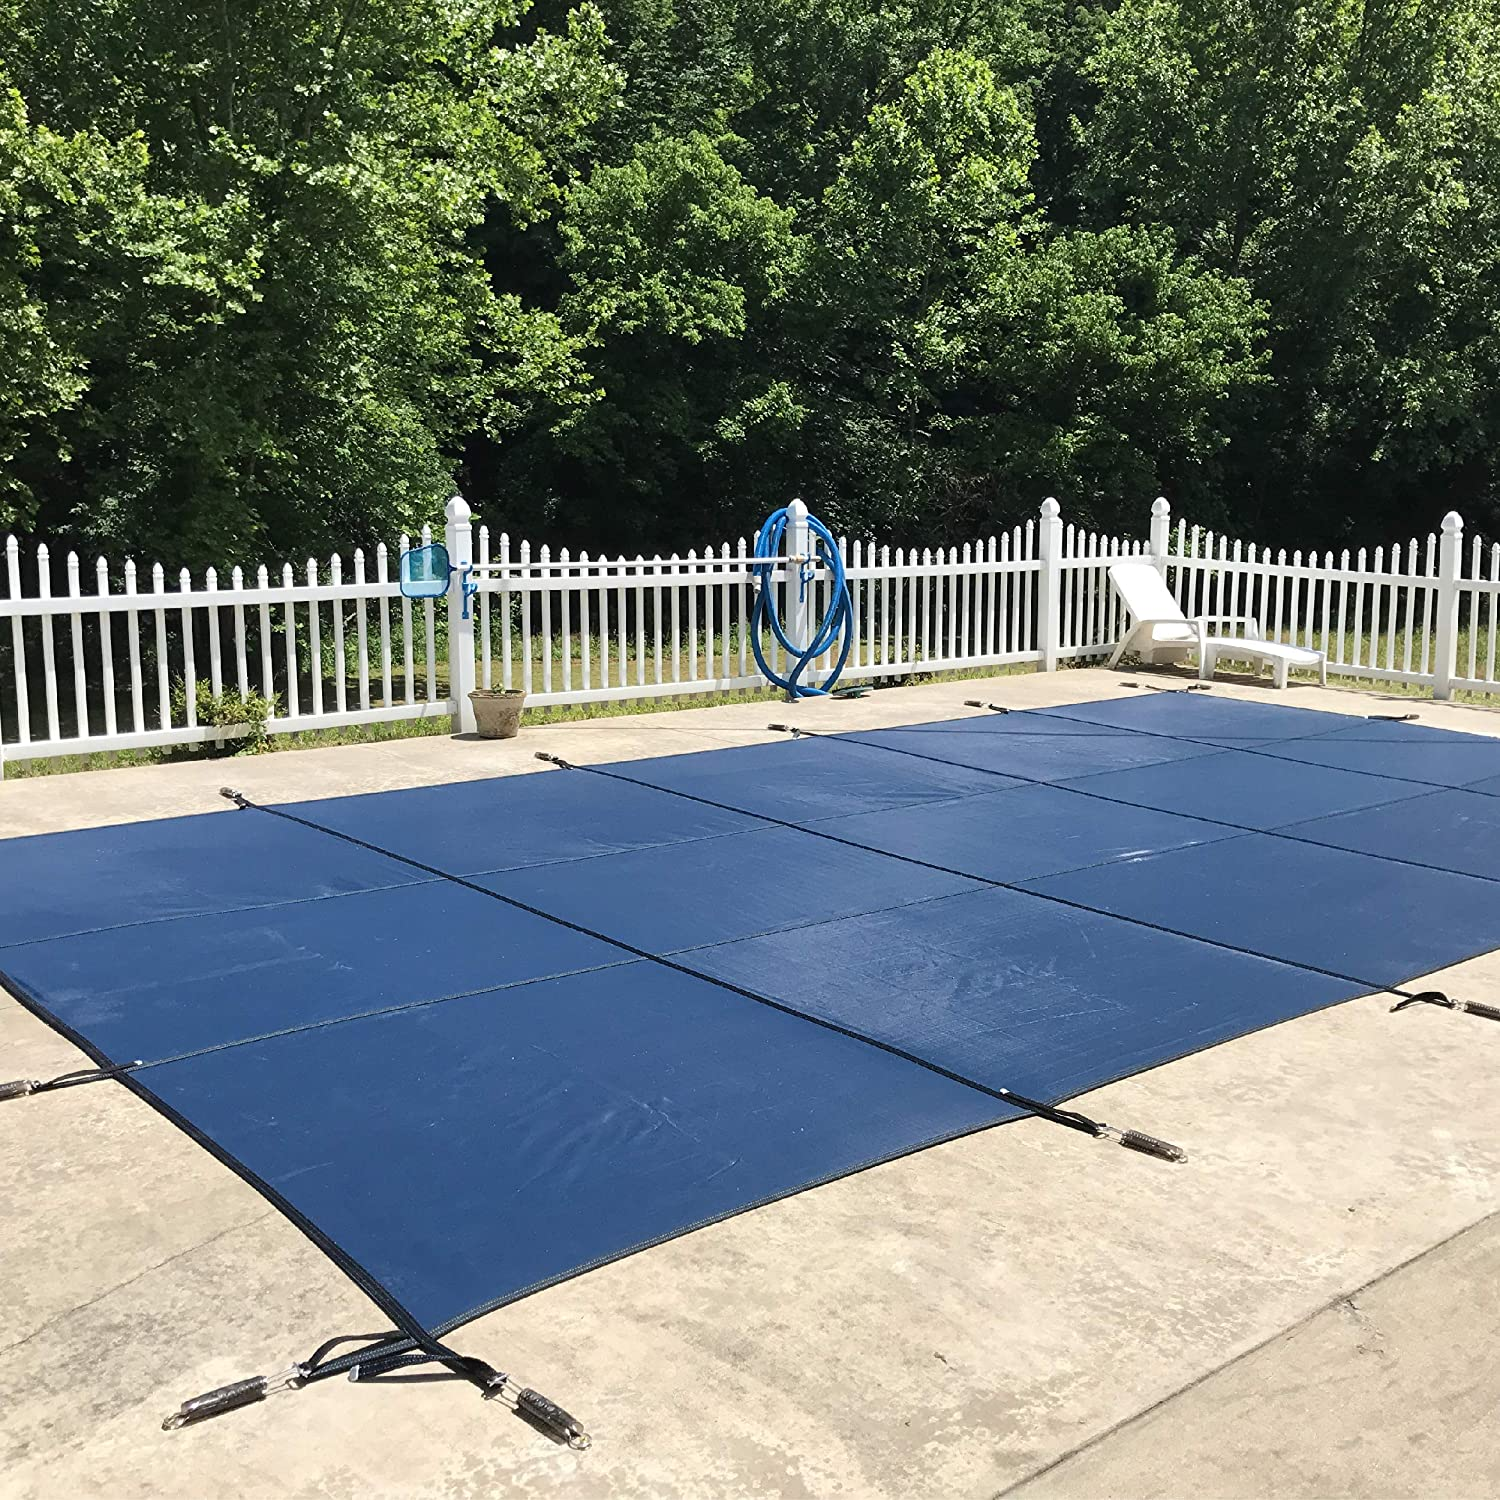 Amazon.com : WaterWarden Inground Pool Safety Cover, Fits 20' x 44', Blue Mesh Easy Installation, Triple Stitched for Max Strength, Includes All Needed Hardware, SCMB2044 : Garden & Outdoor